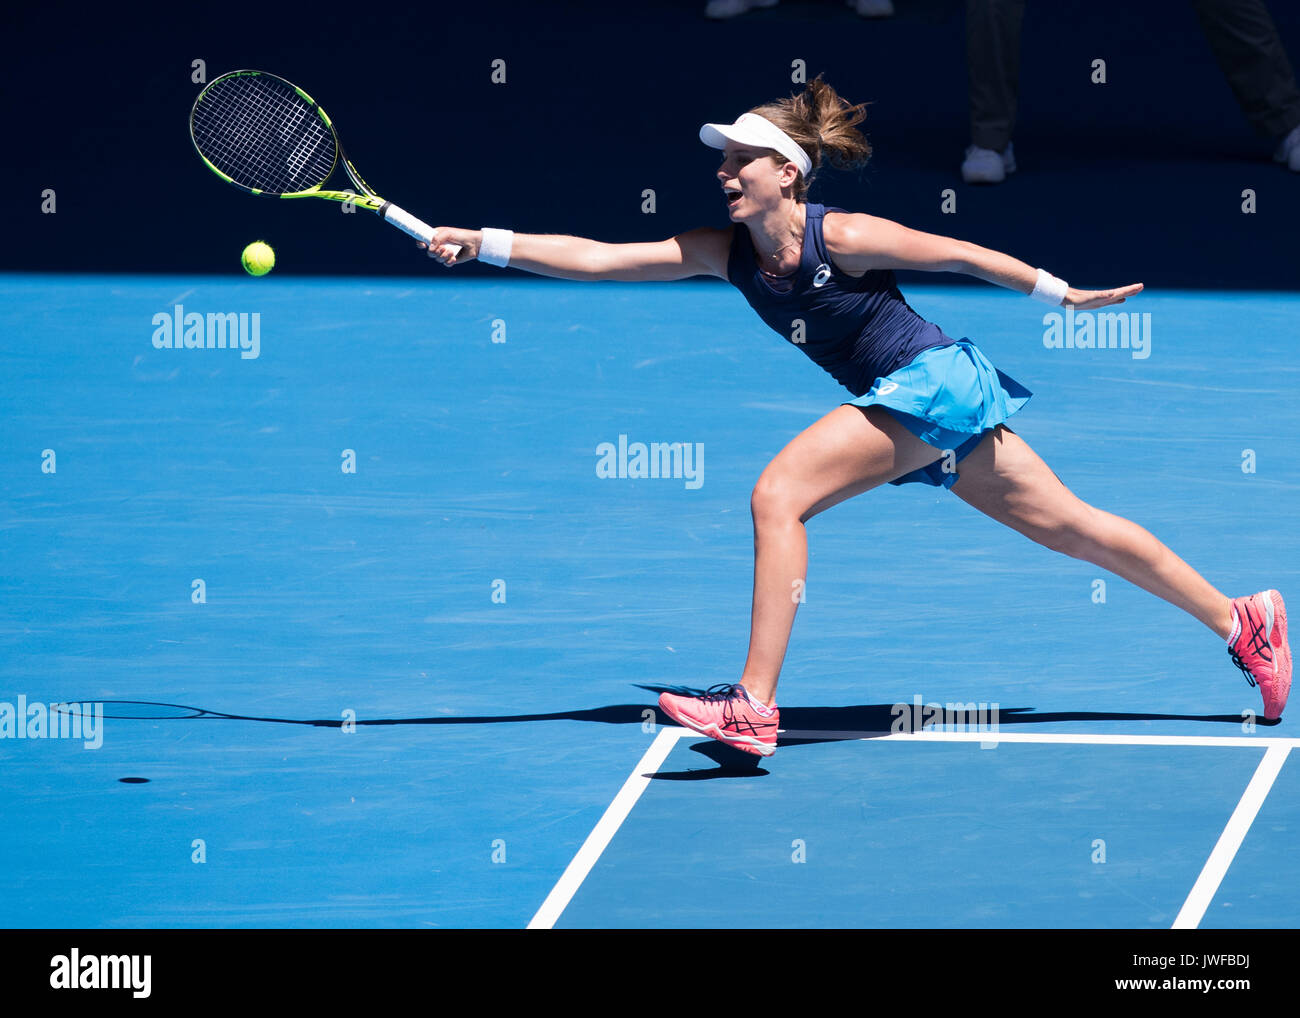 JOHANNA KONTA (GBR) in action at the Australian Open - Stock Image